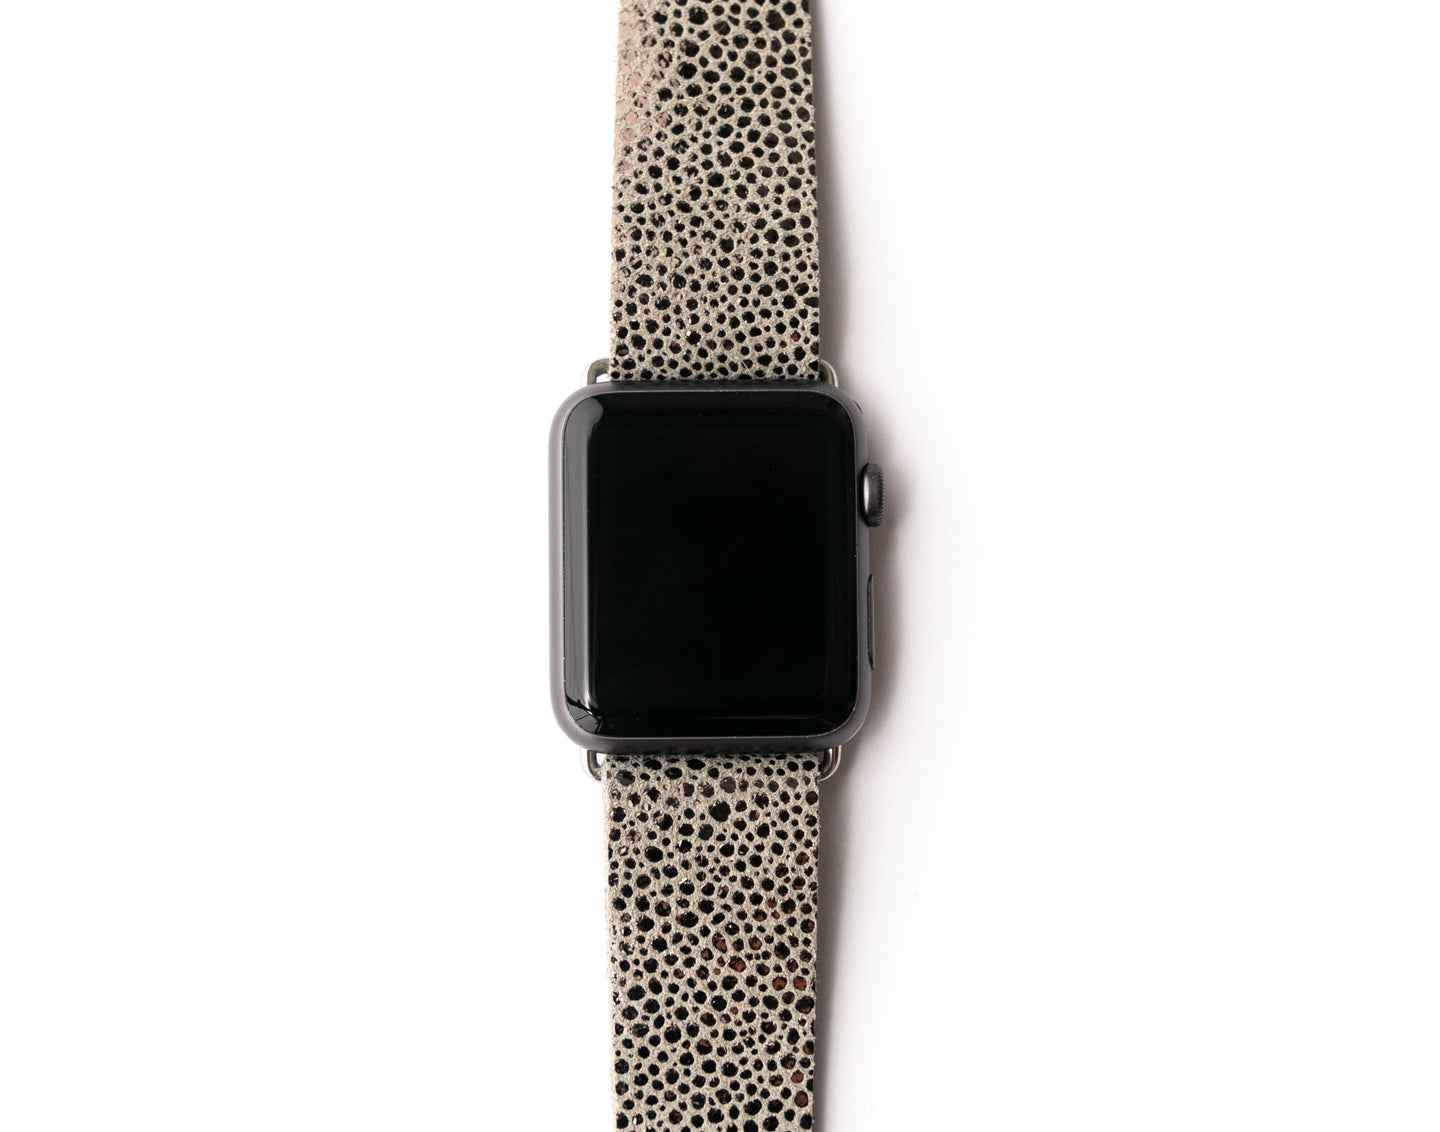 Anthracite Speckled Watch Band